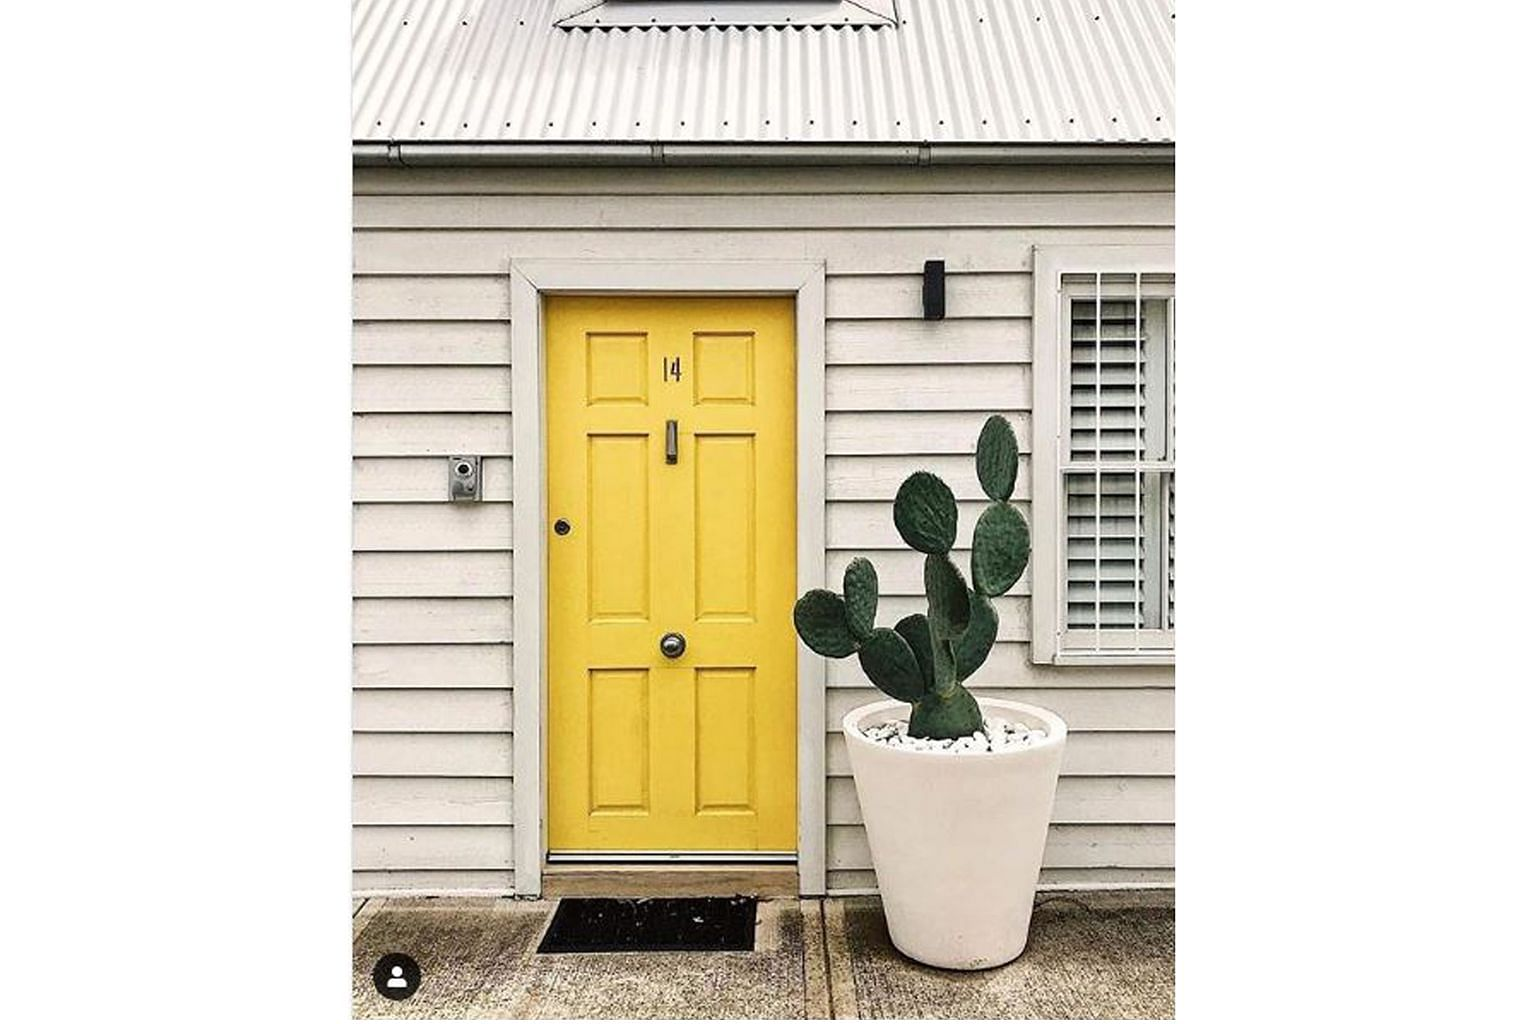 Choosing the right colour for your front door can set the tone for the overall experience the house provides, says colour consultant Kristen Chuber. For instance, choose yellow for a boost to spirits or blue to create a subtle statement.